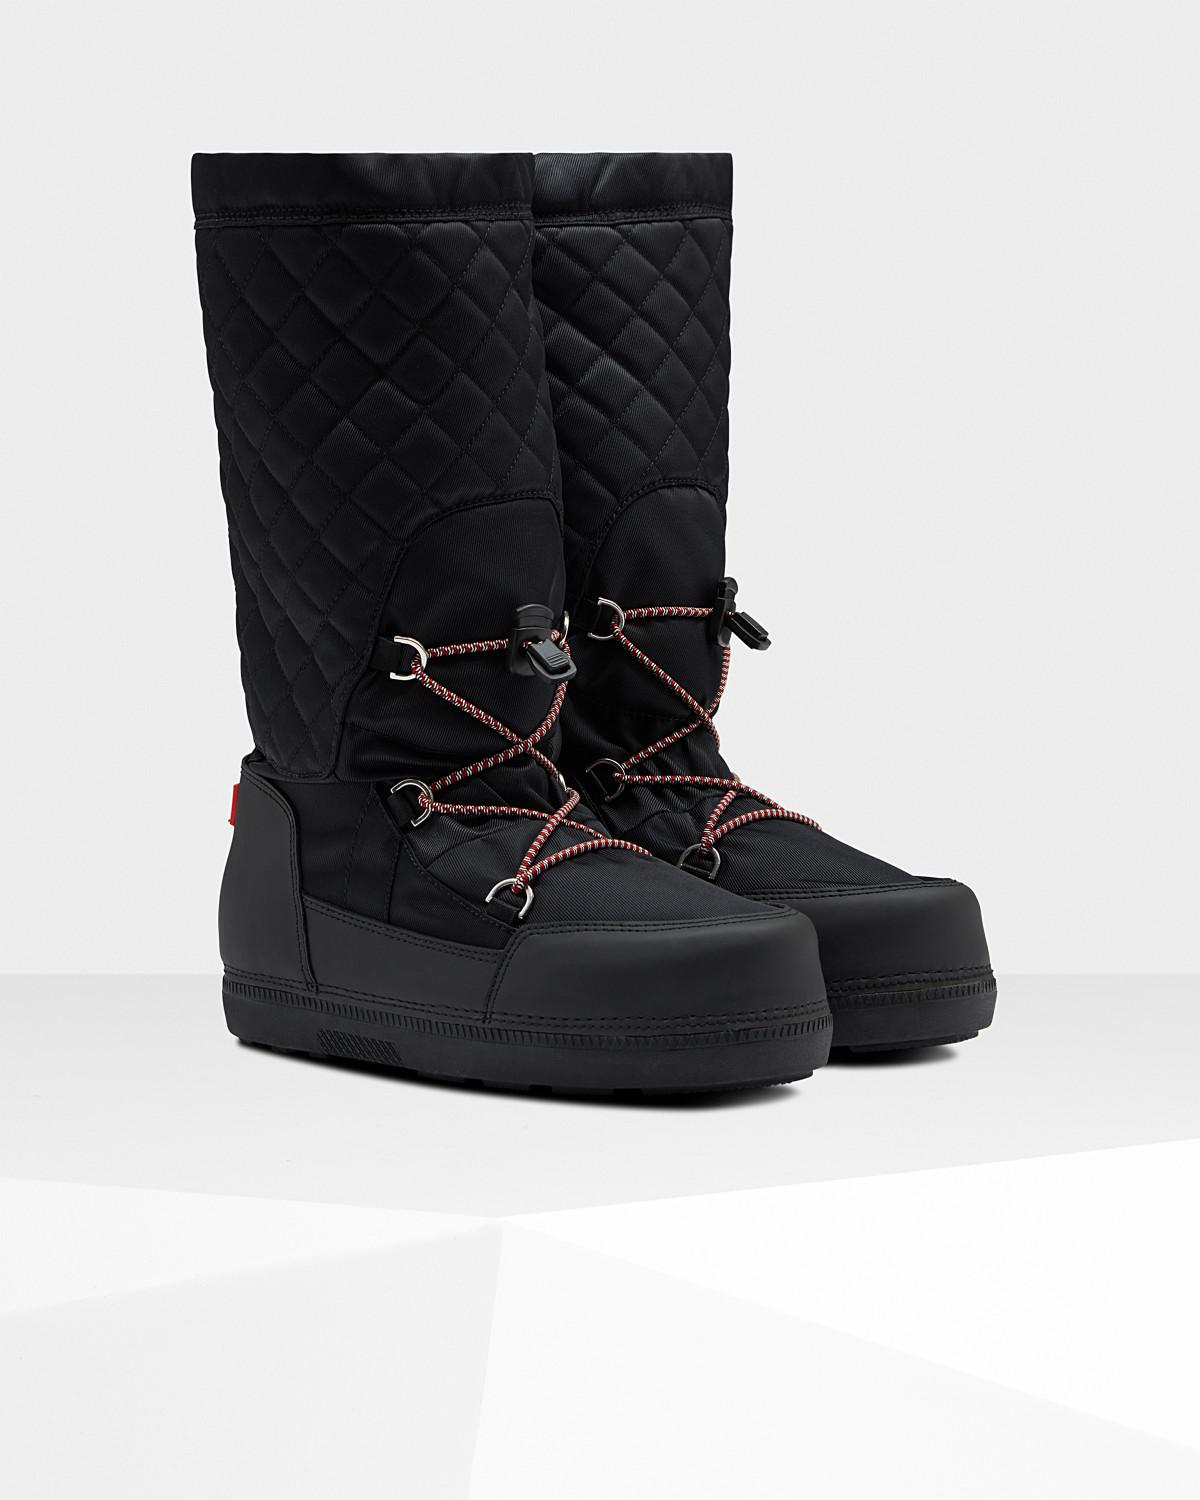 2533f78f1c09 Lyst - HUNTER Original Quilted Snow Boots in Black